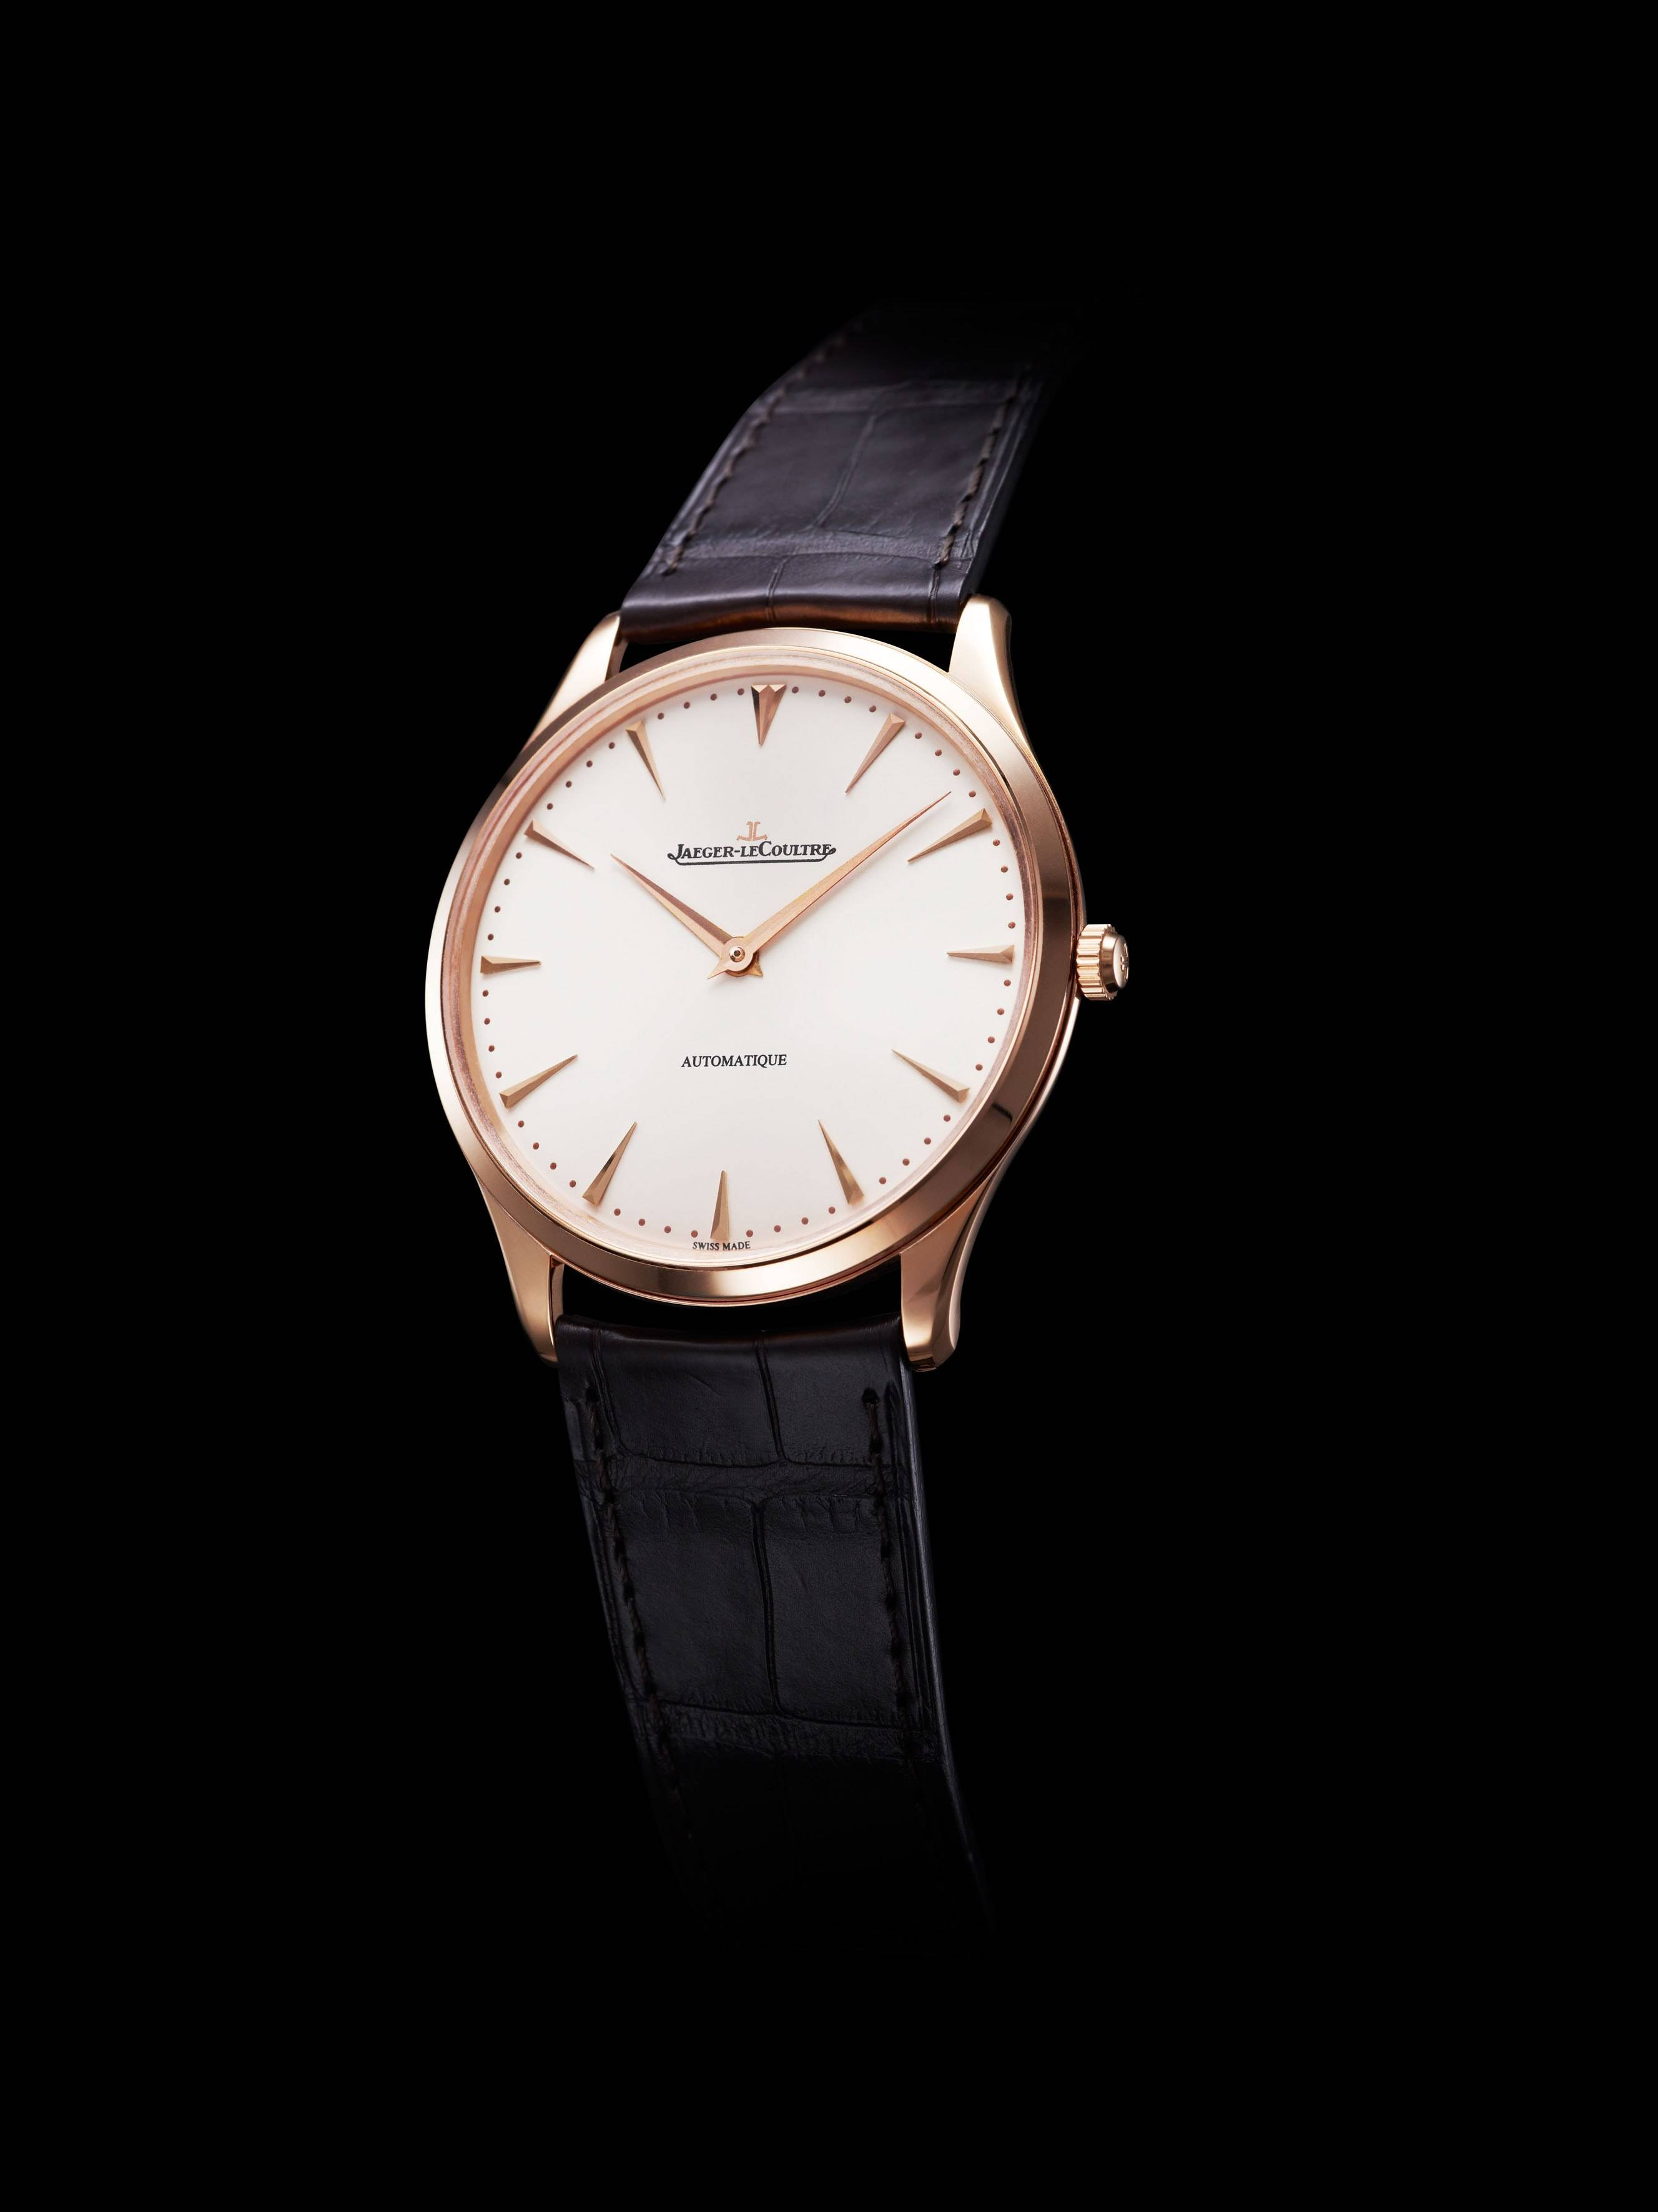 Best Classic Watches of 2013